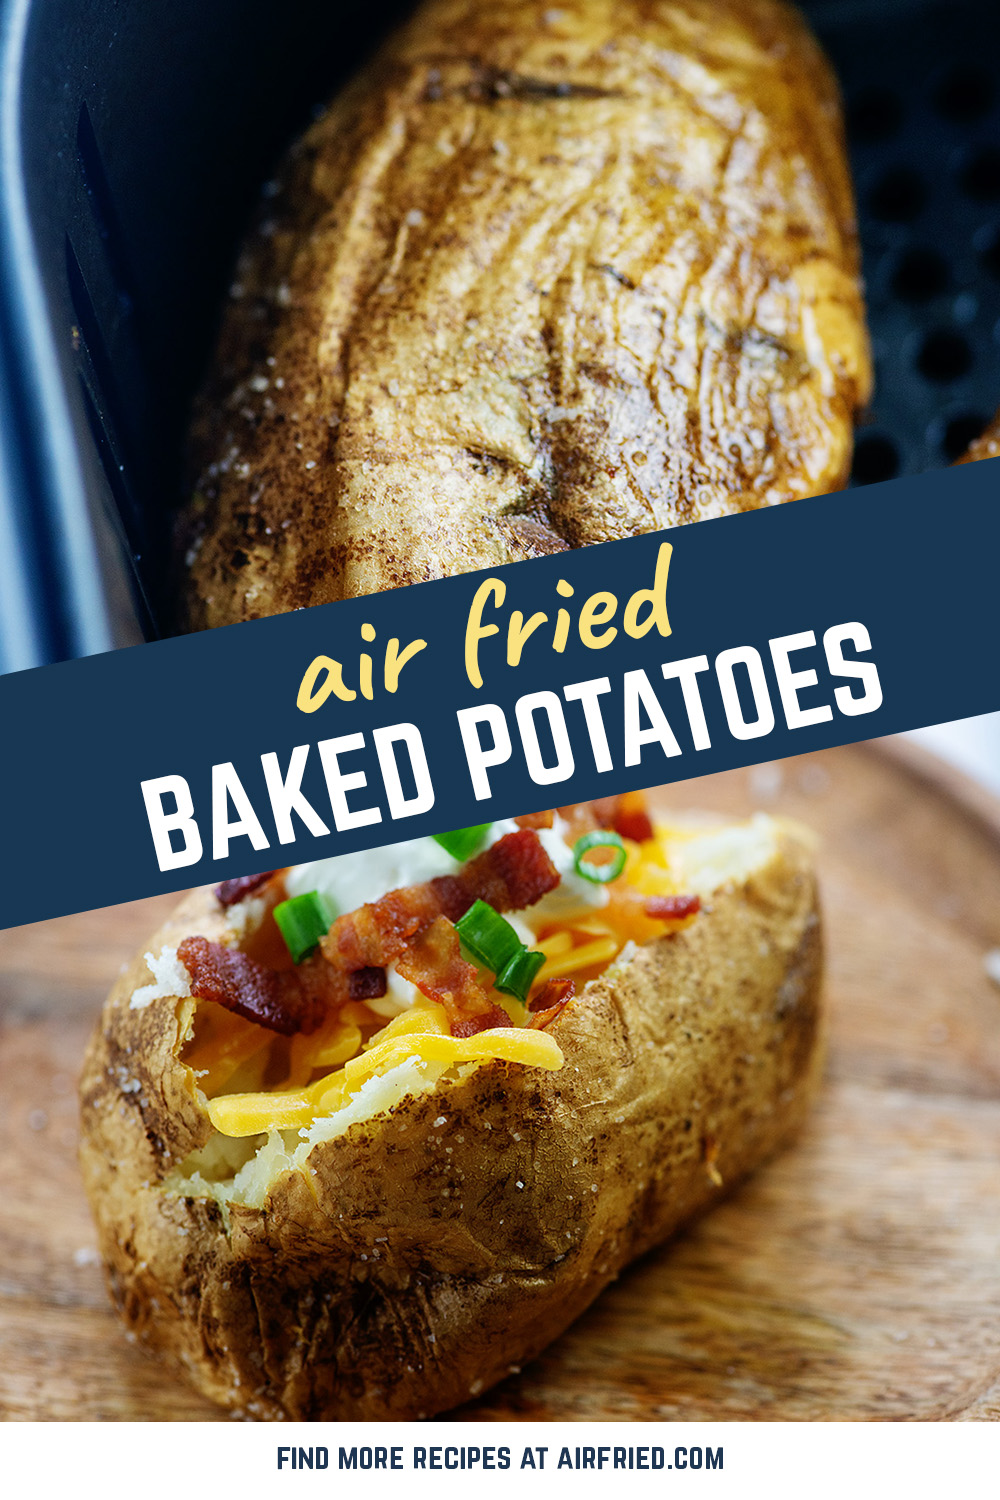 These super simple baked potatoes are so good! #airfried #potatoes #recipe